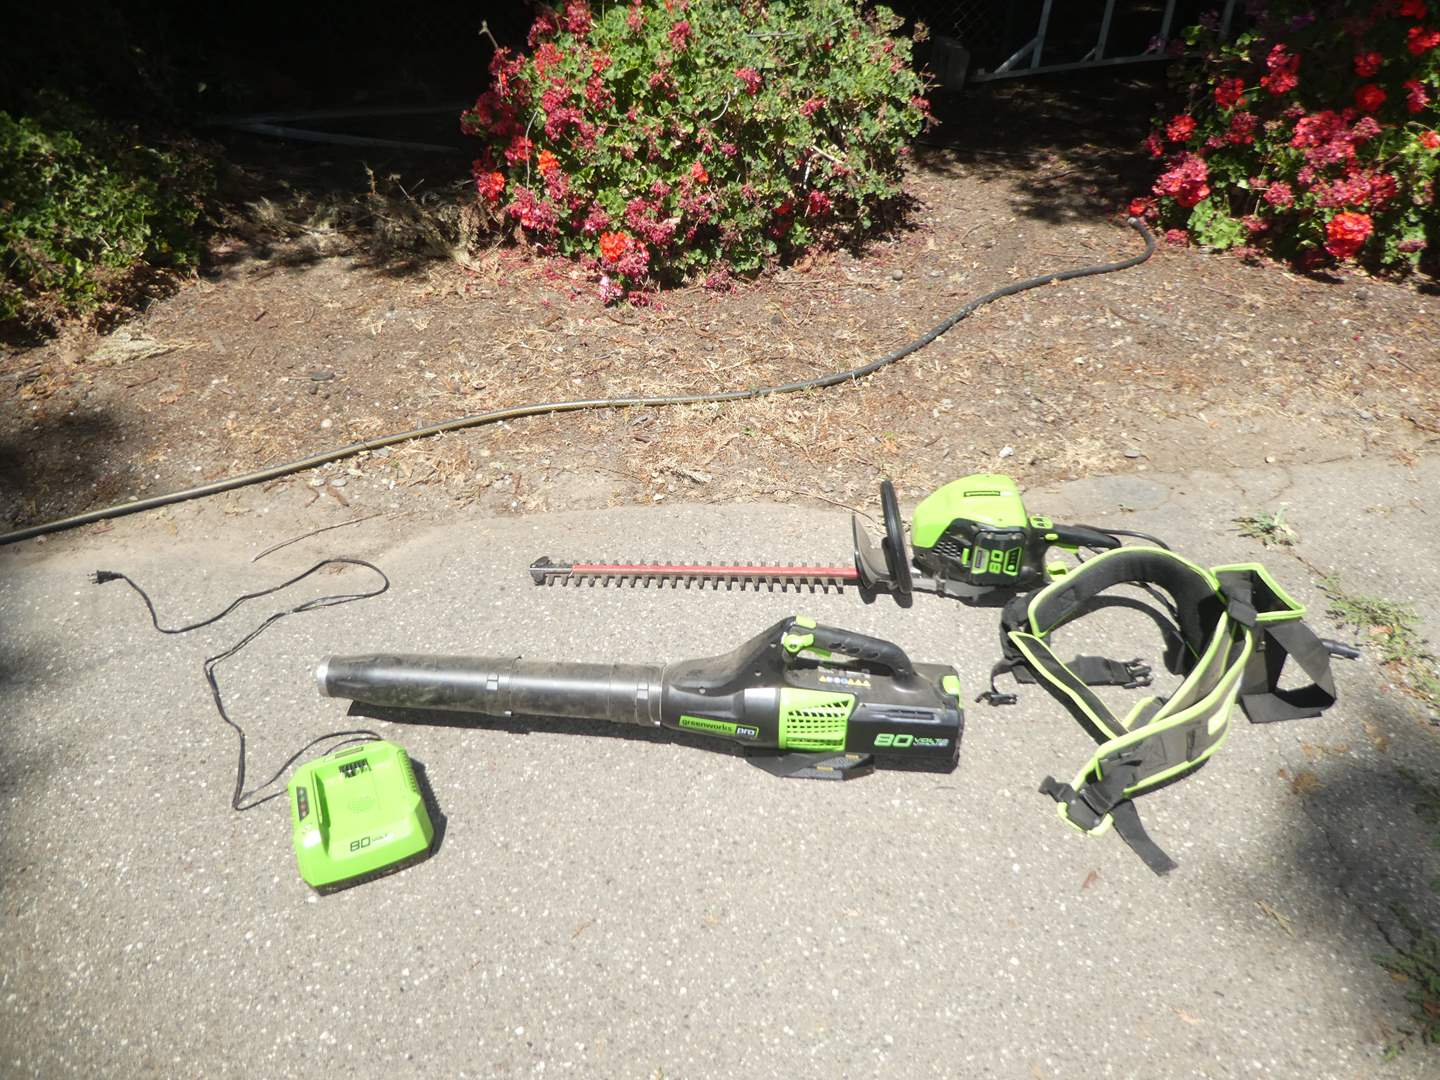 Lot # 228 - Greenworks Pro Blower and Hedge Trimmer (main image)